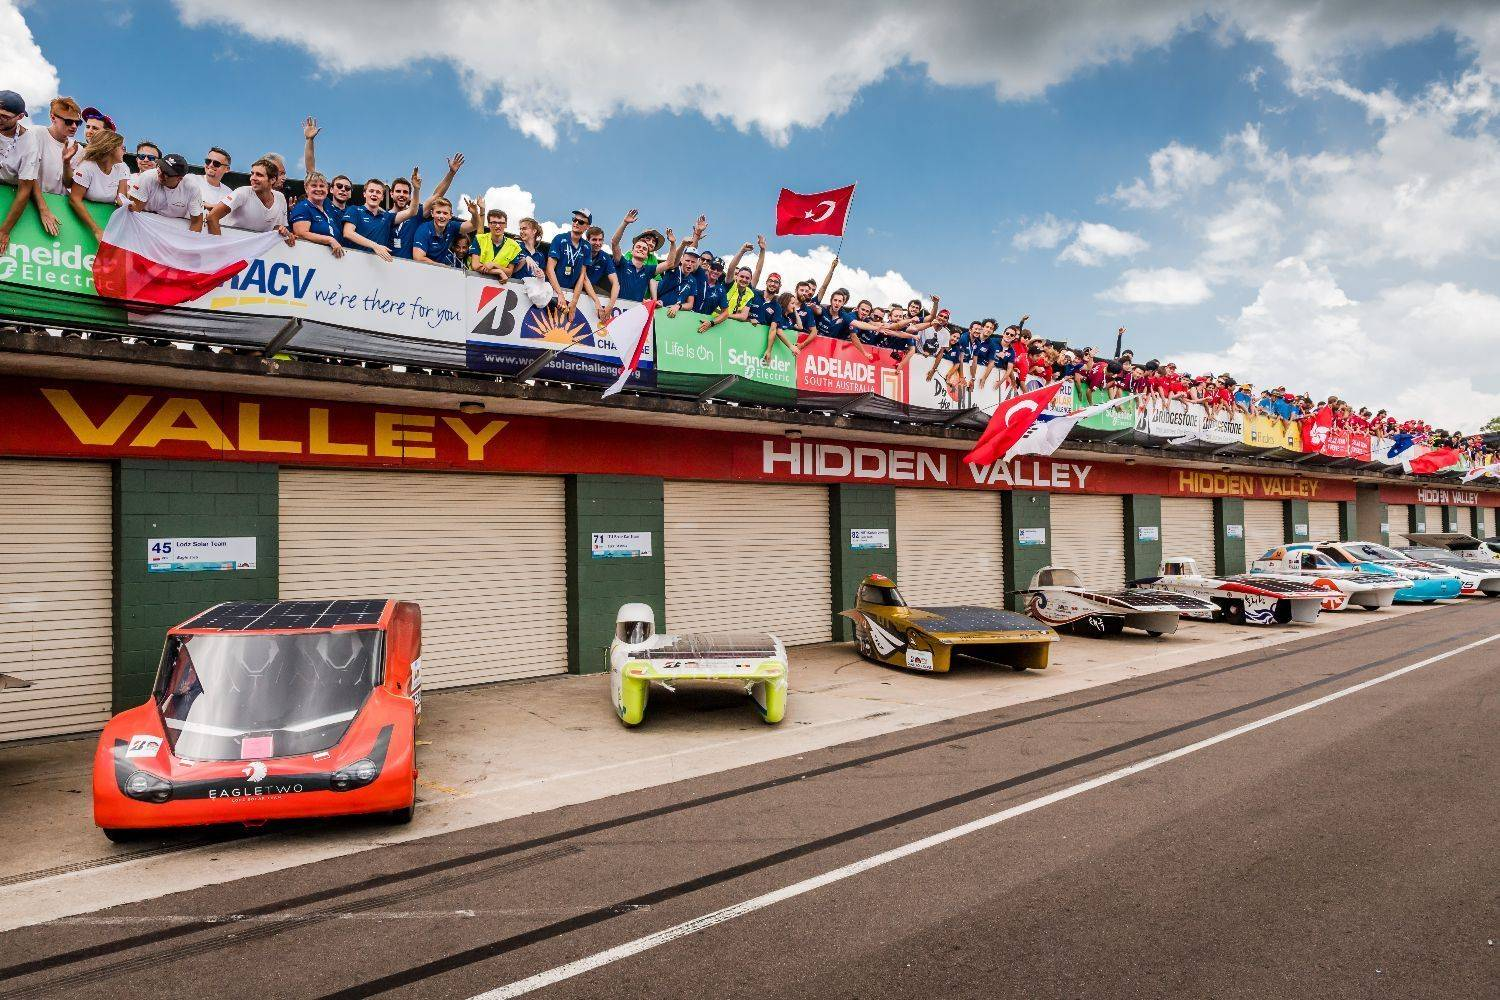 Belgian Solar Team in pole position at championship for solar cars